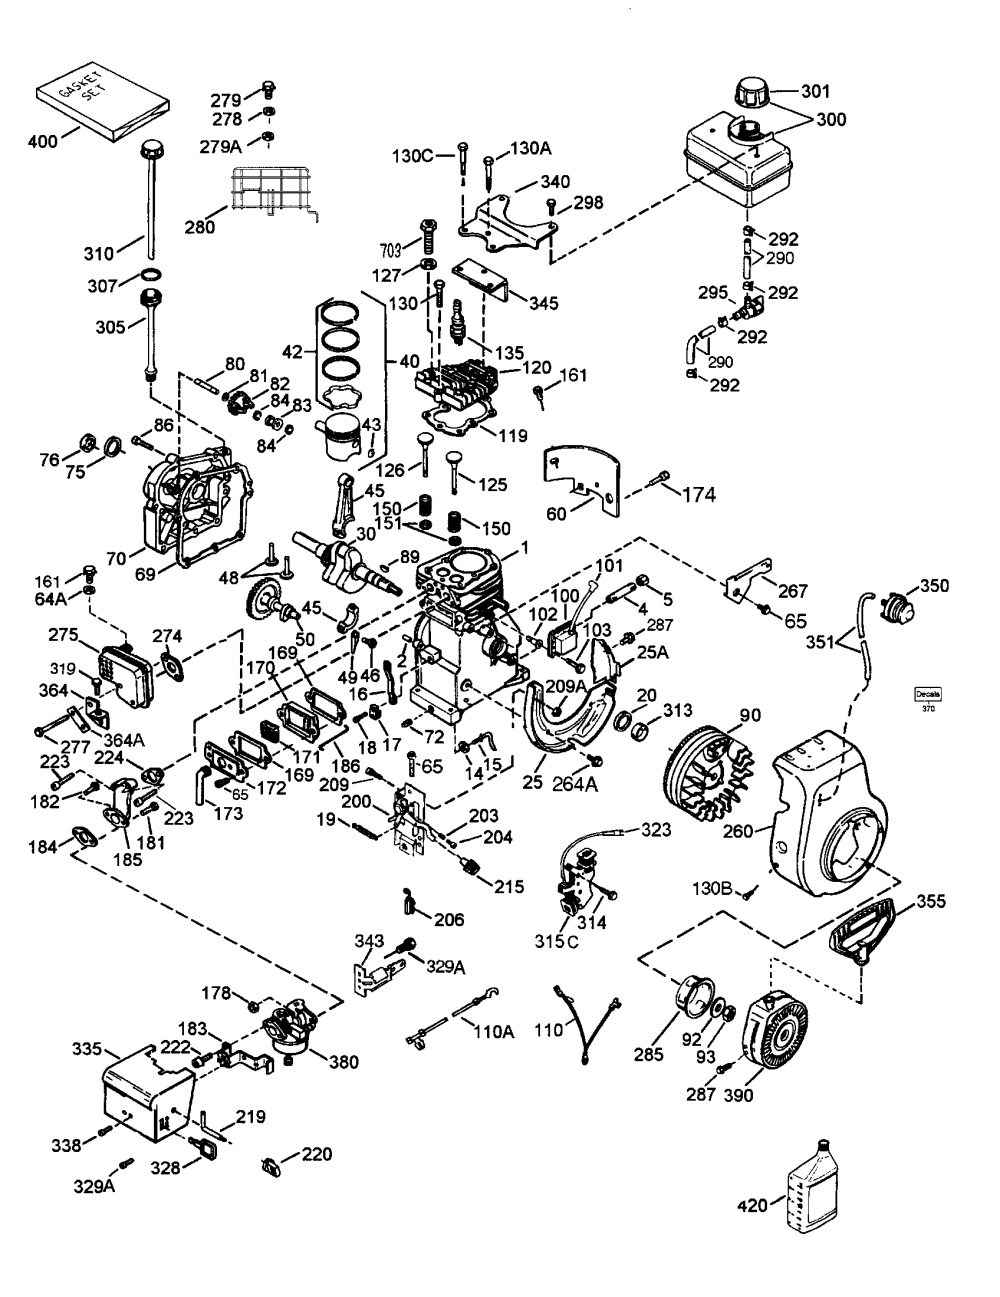 medium resolution of 5 hp tecumseh engine diagram